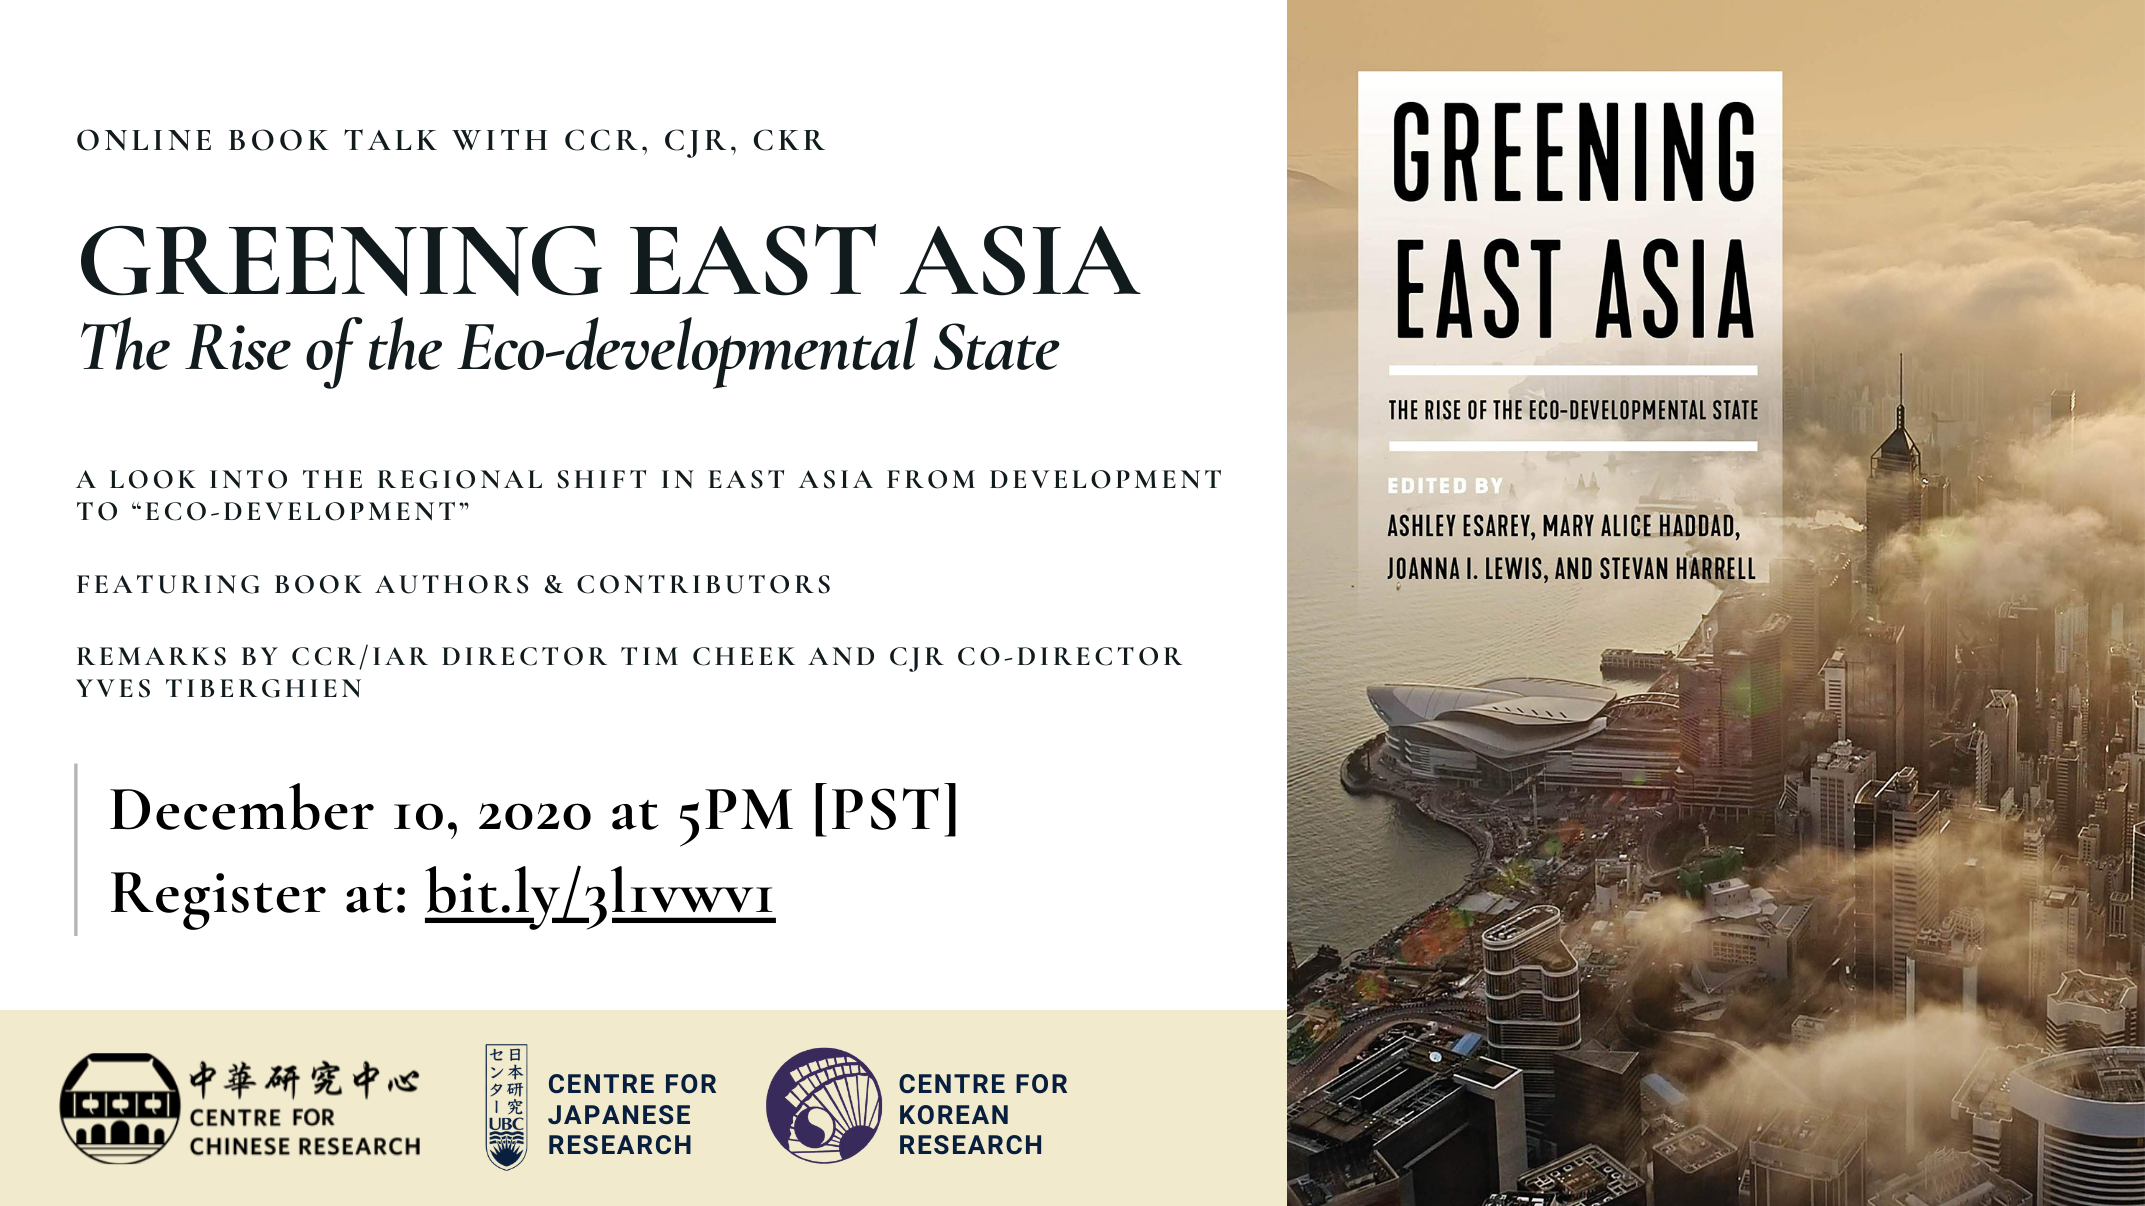 Promotional image for book talk - Greening East Asia. Featuring the book cover image and event info.